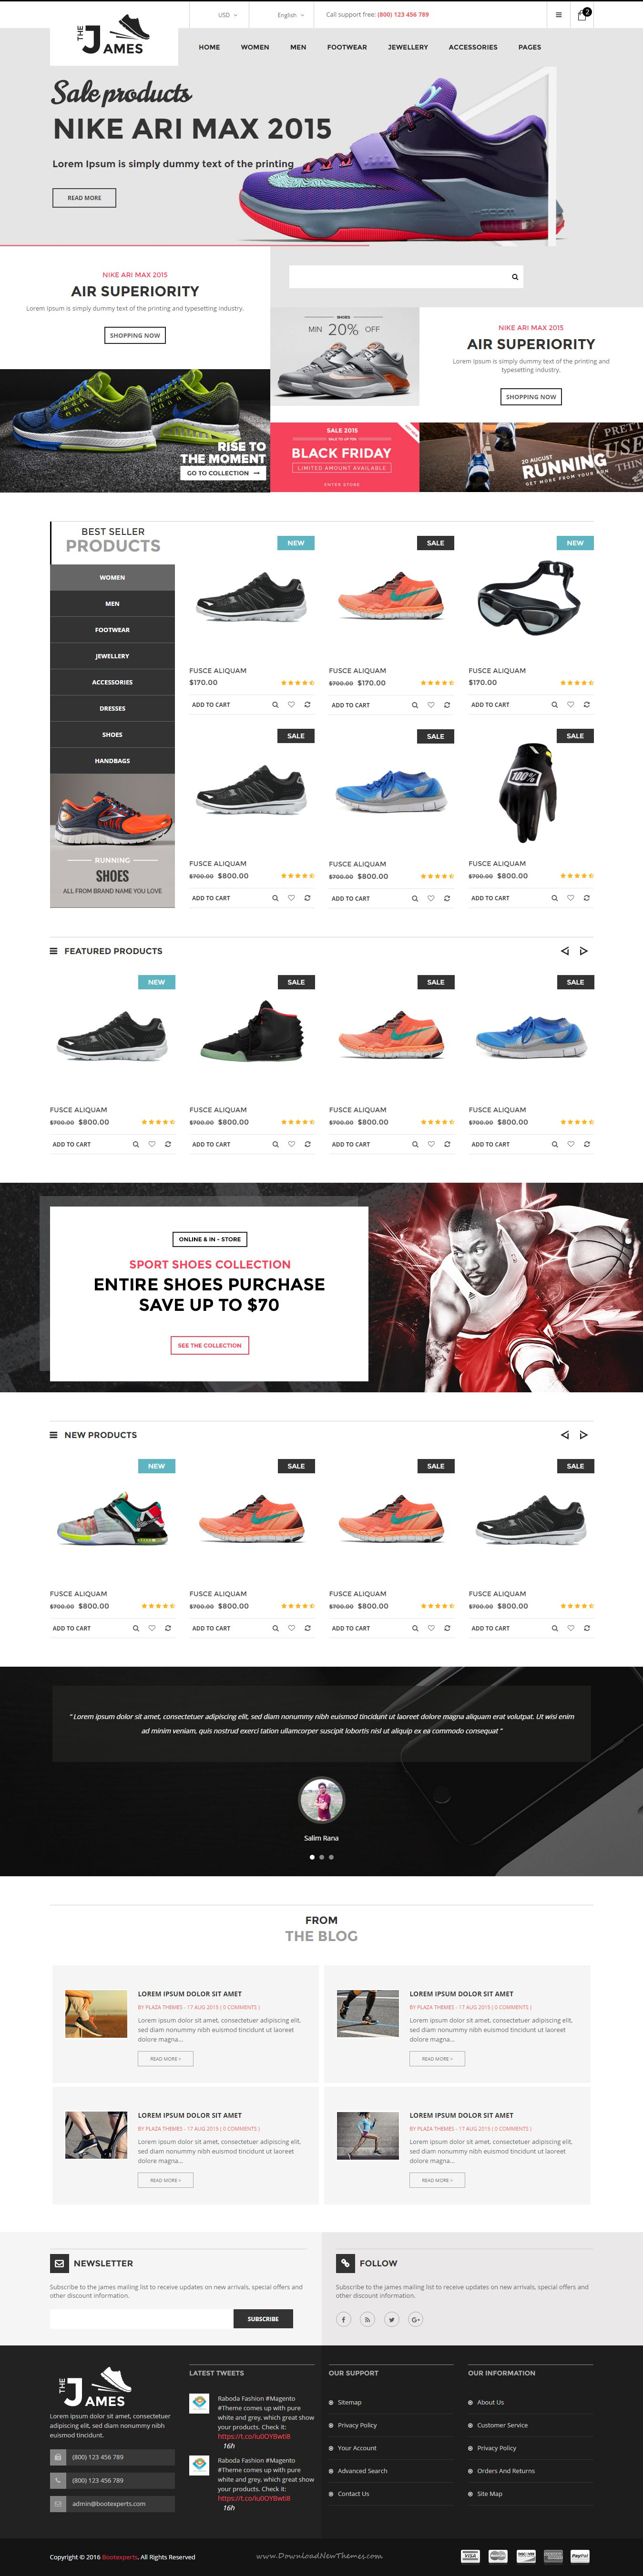 James - Responsive Bootstrap Shoes Store Template | Template